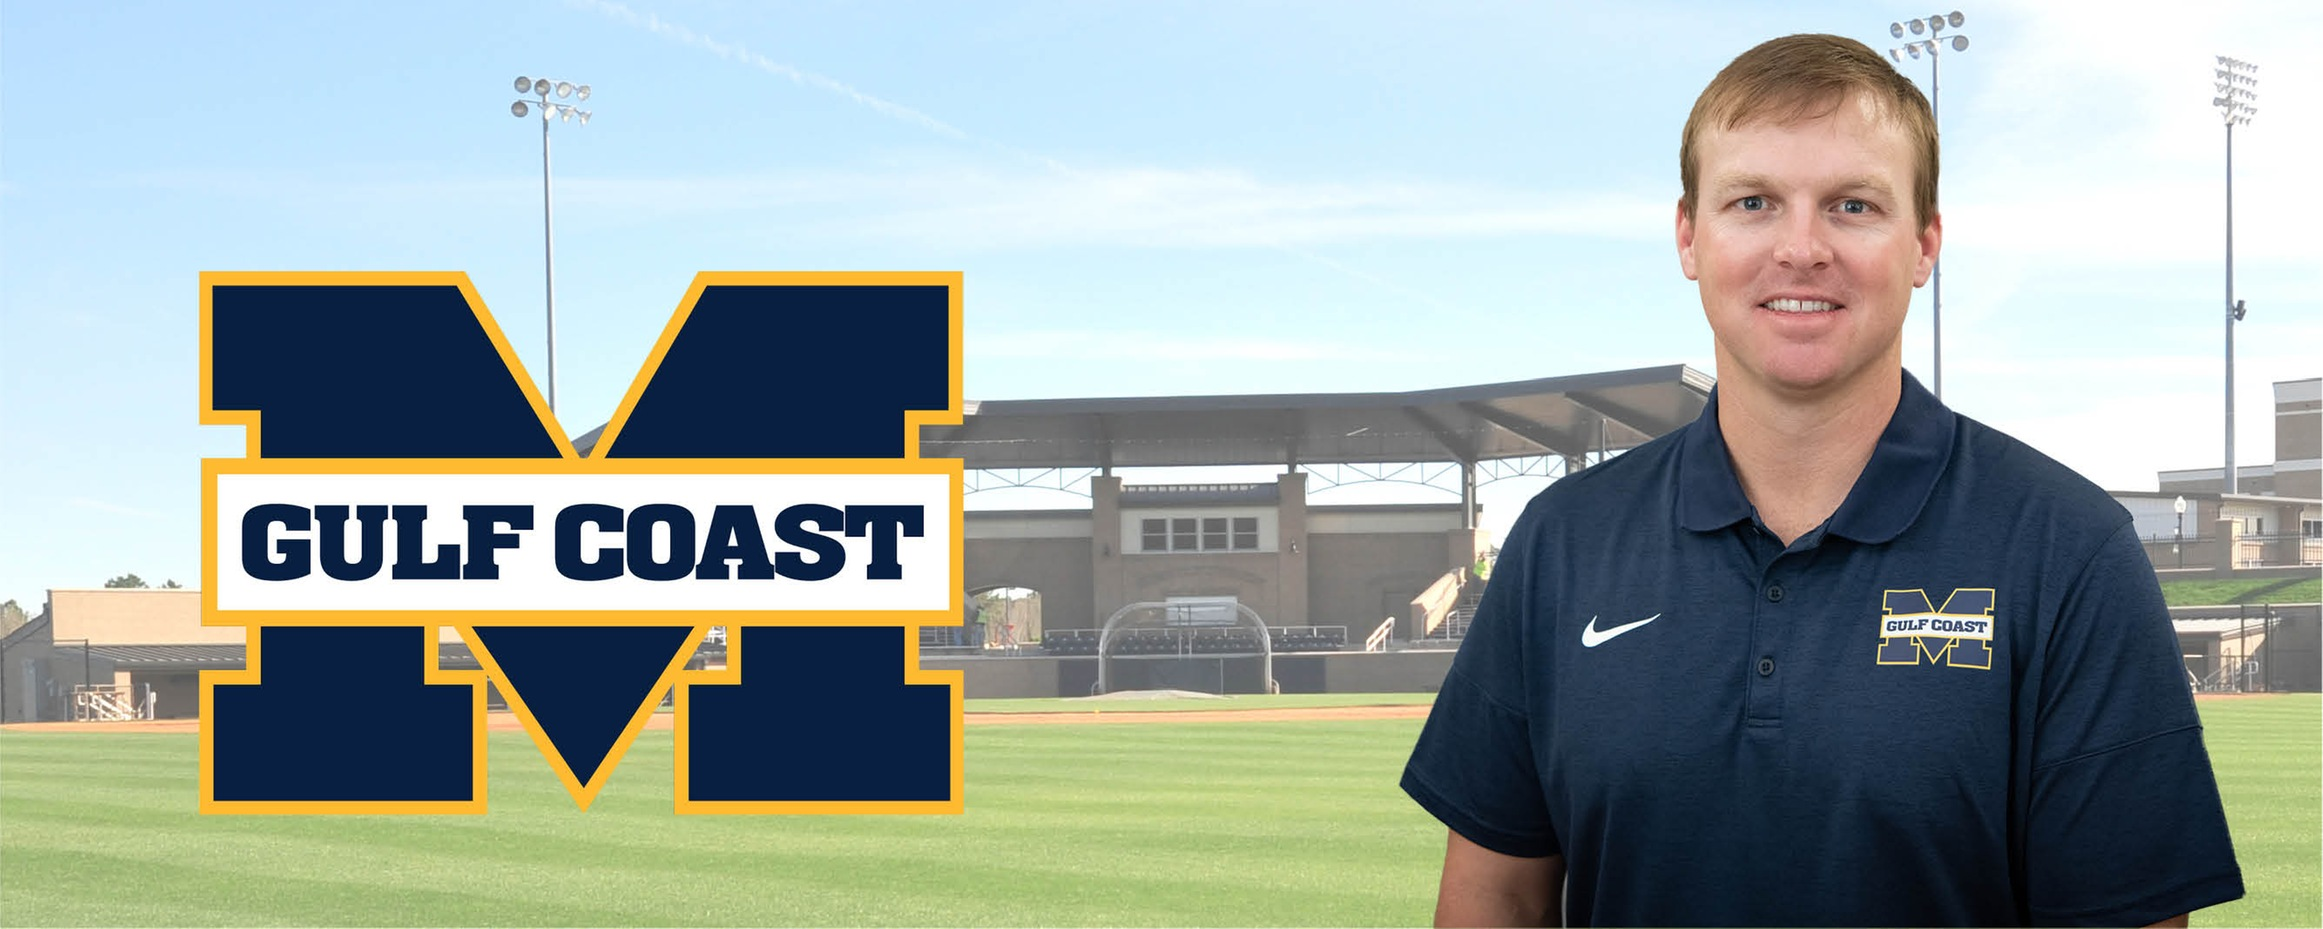 MGCCC hires Thigpen as new baseball coach